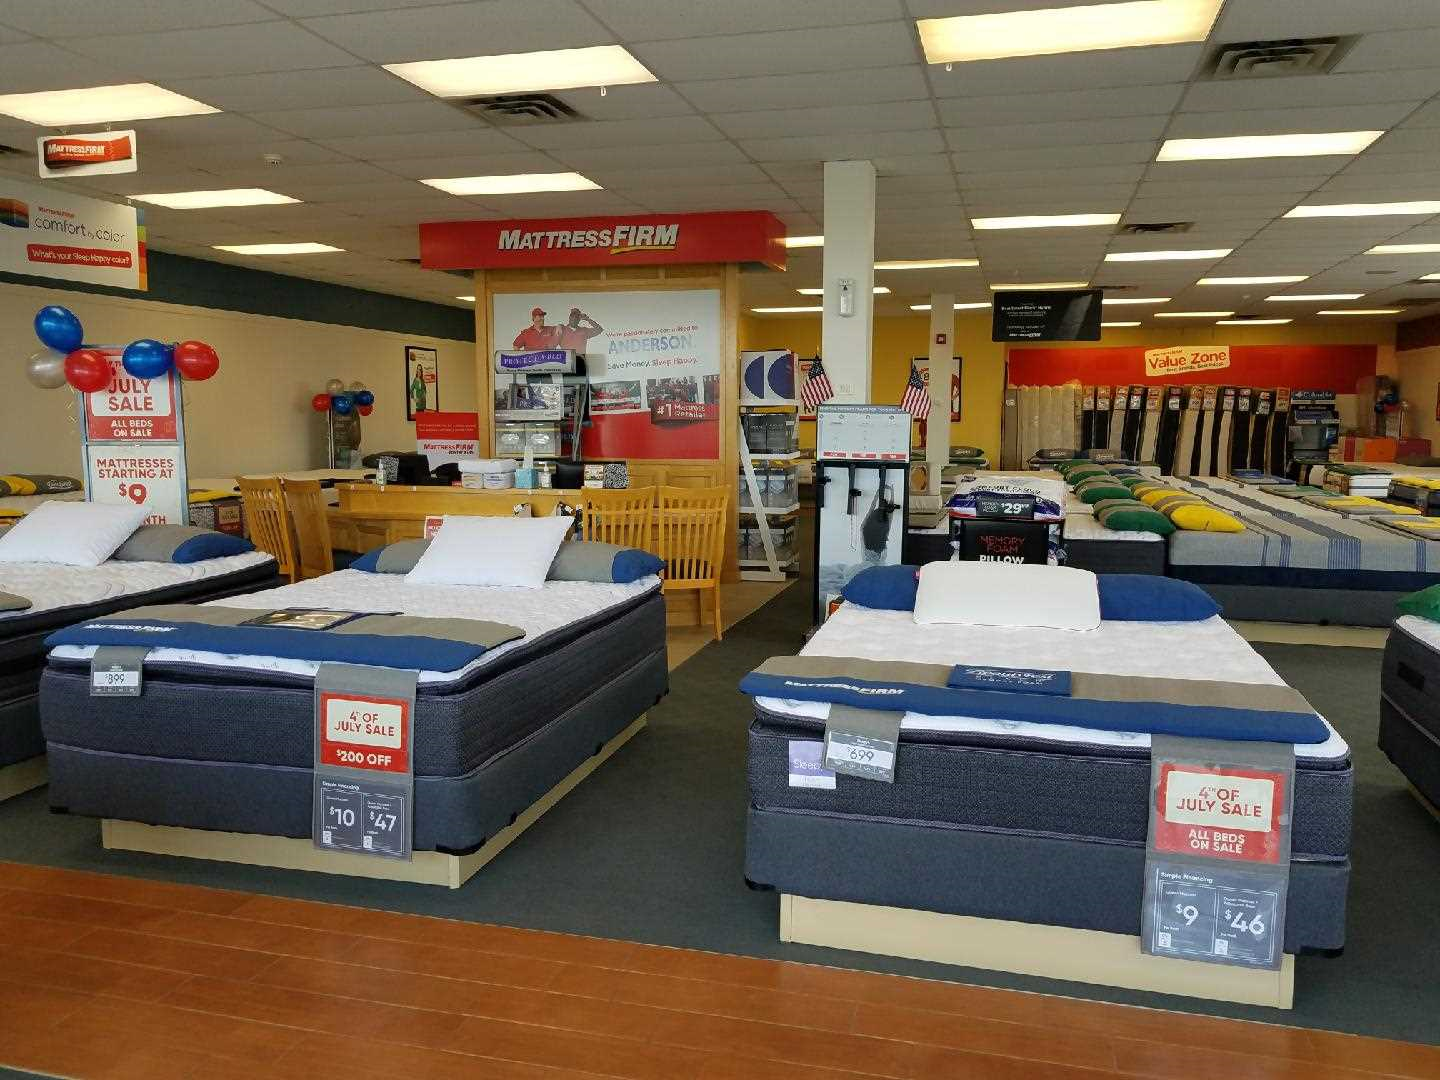 Mattress Firm Anderson image 5